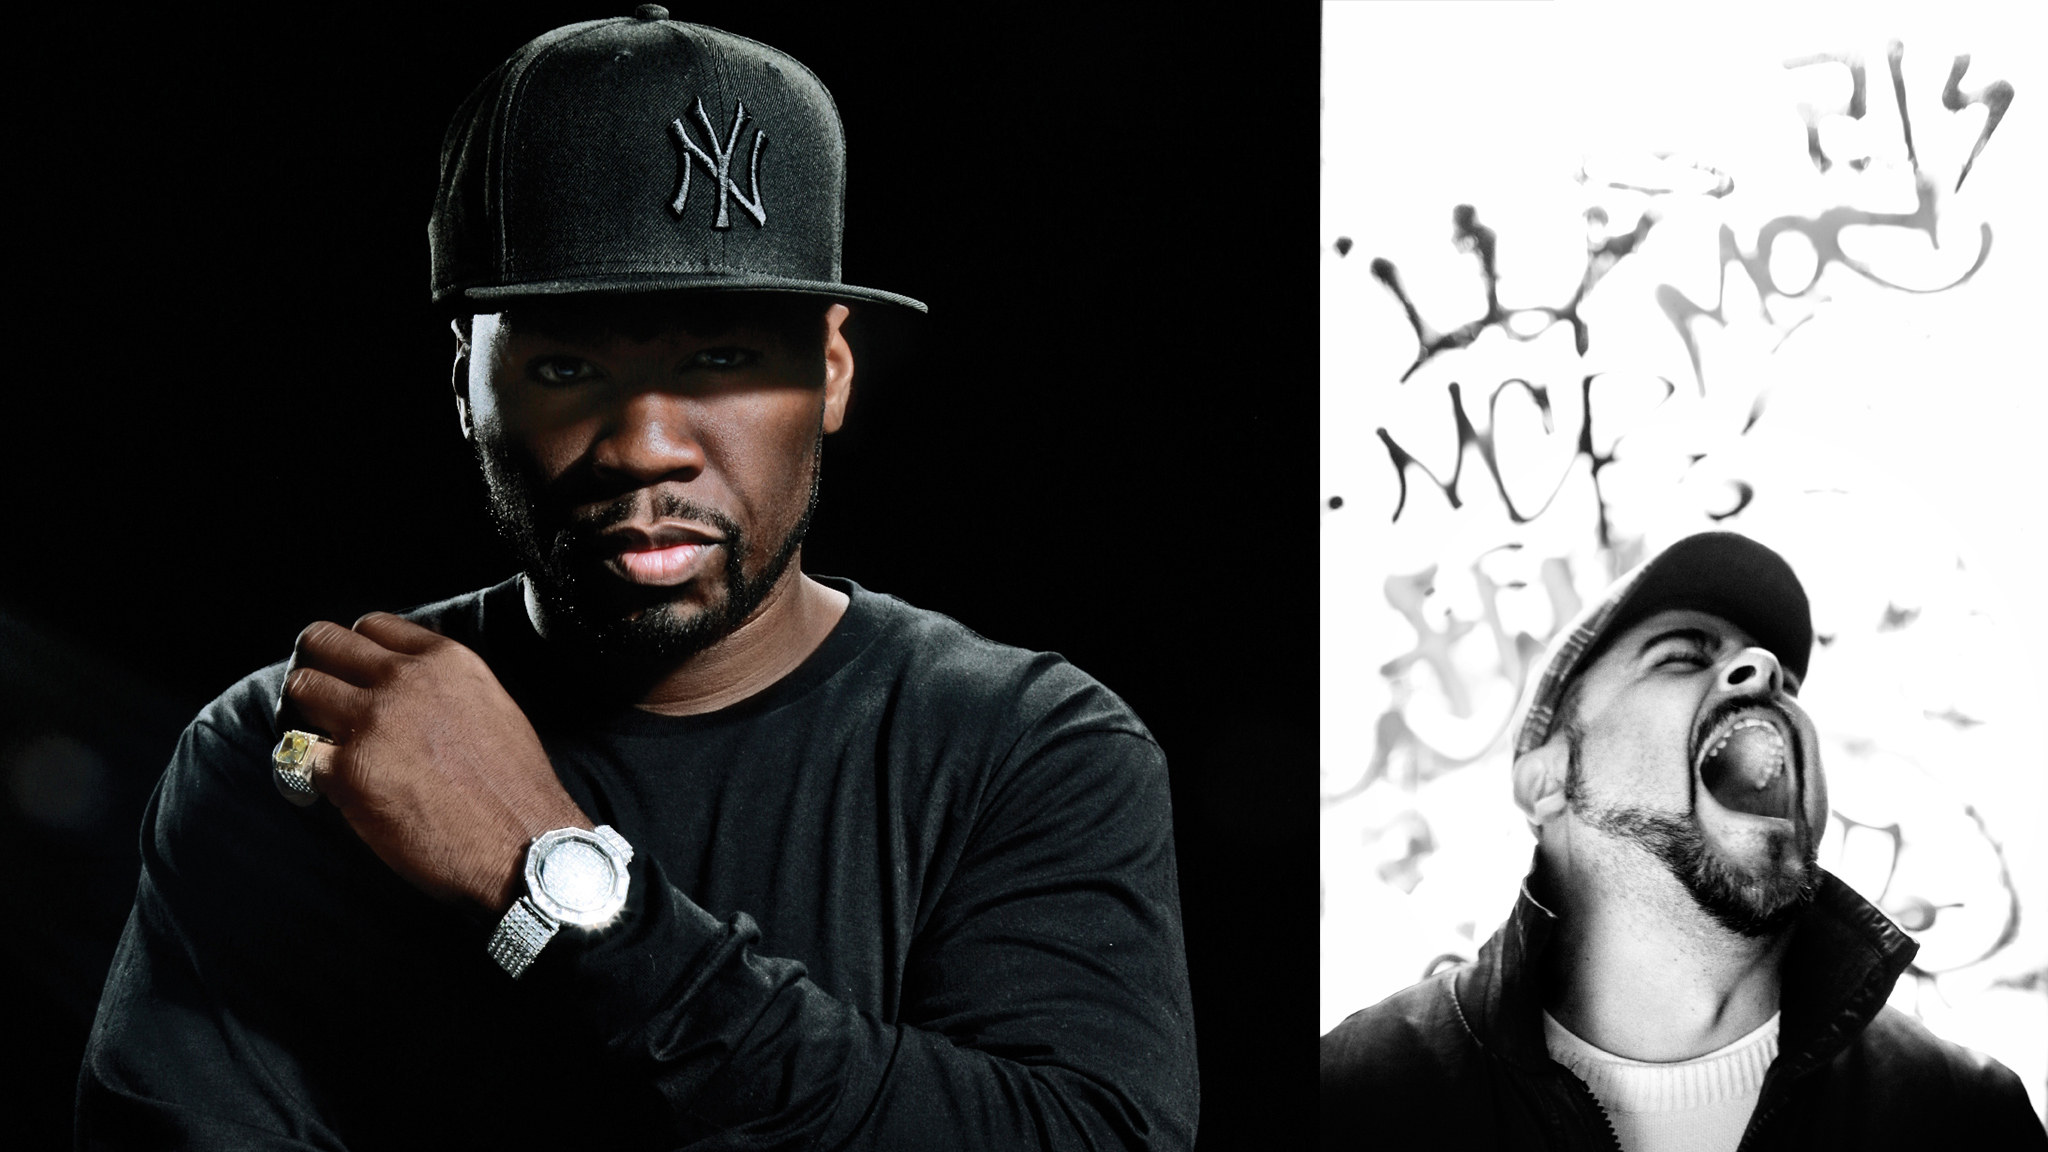 50 Cent (L) and Spanish rapper NACH (R)  will join EDM artist Zedd at X Games Barcelona for the X Games MUSIC showcase.